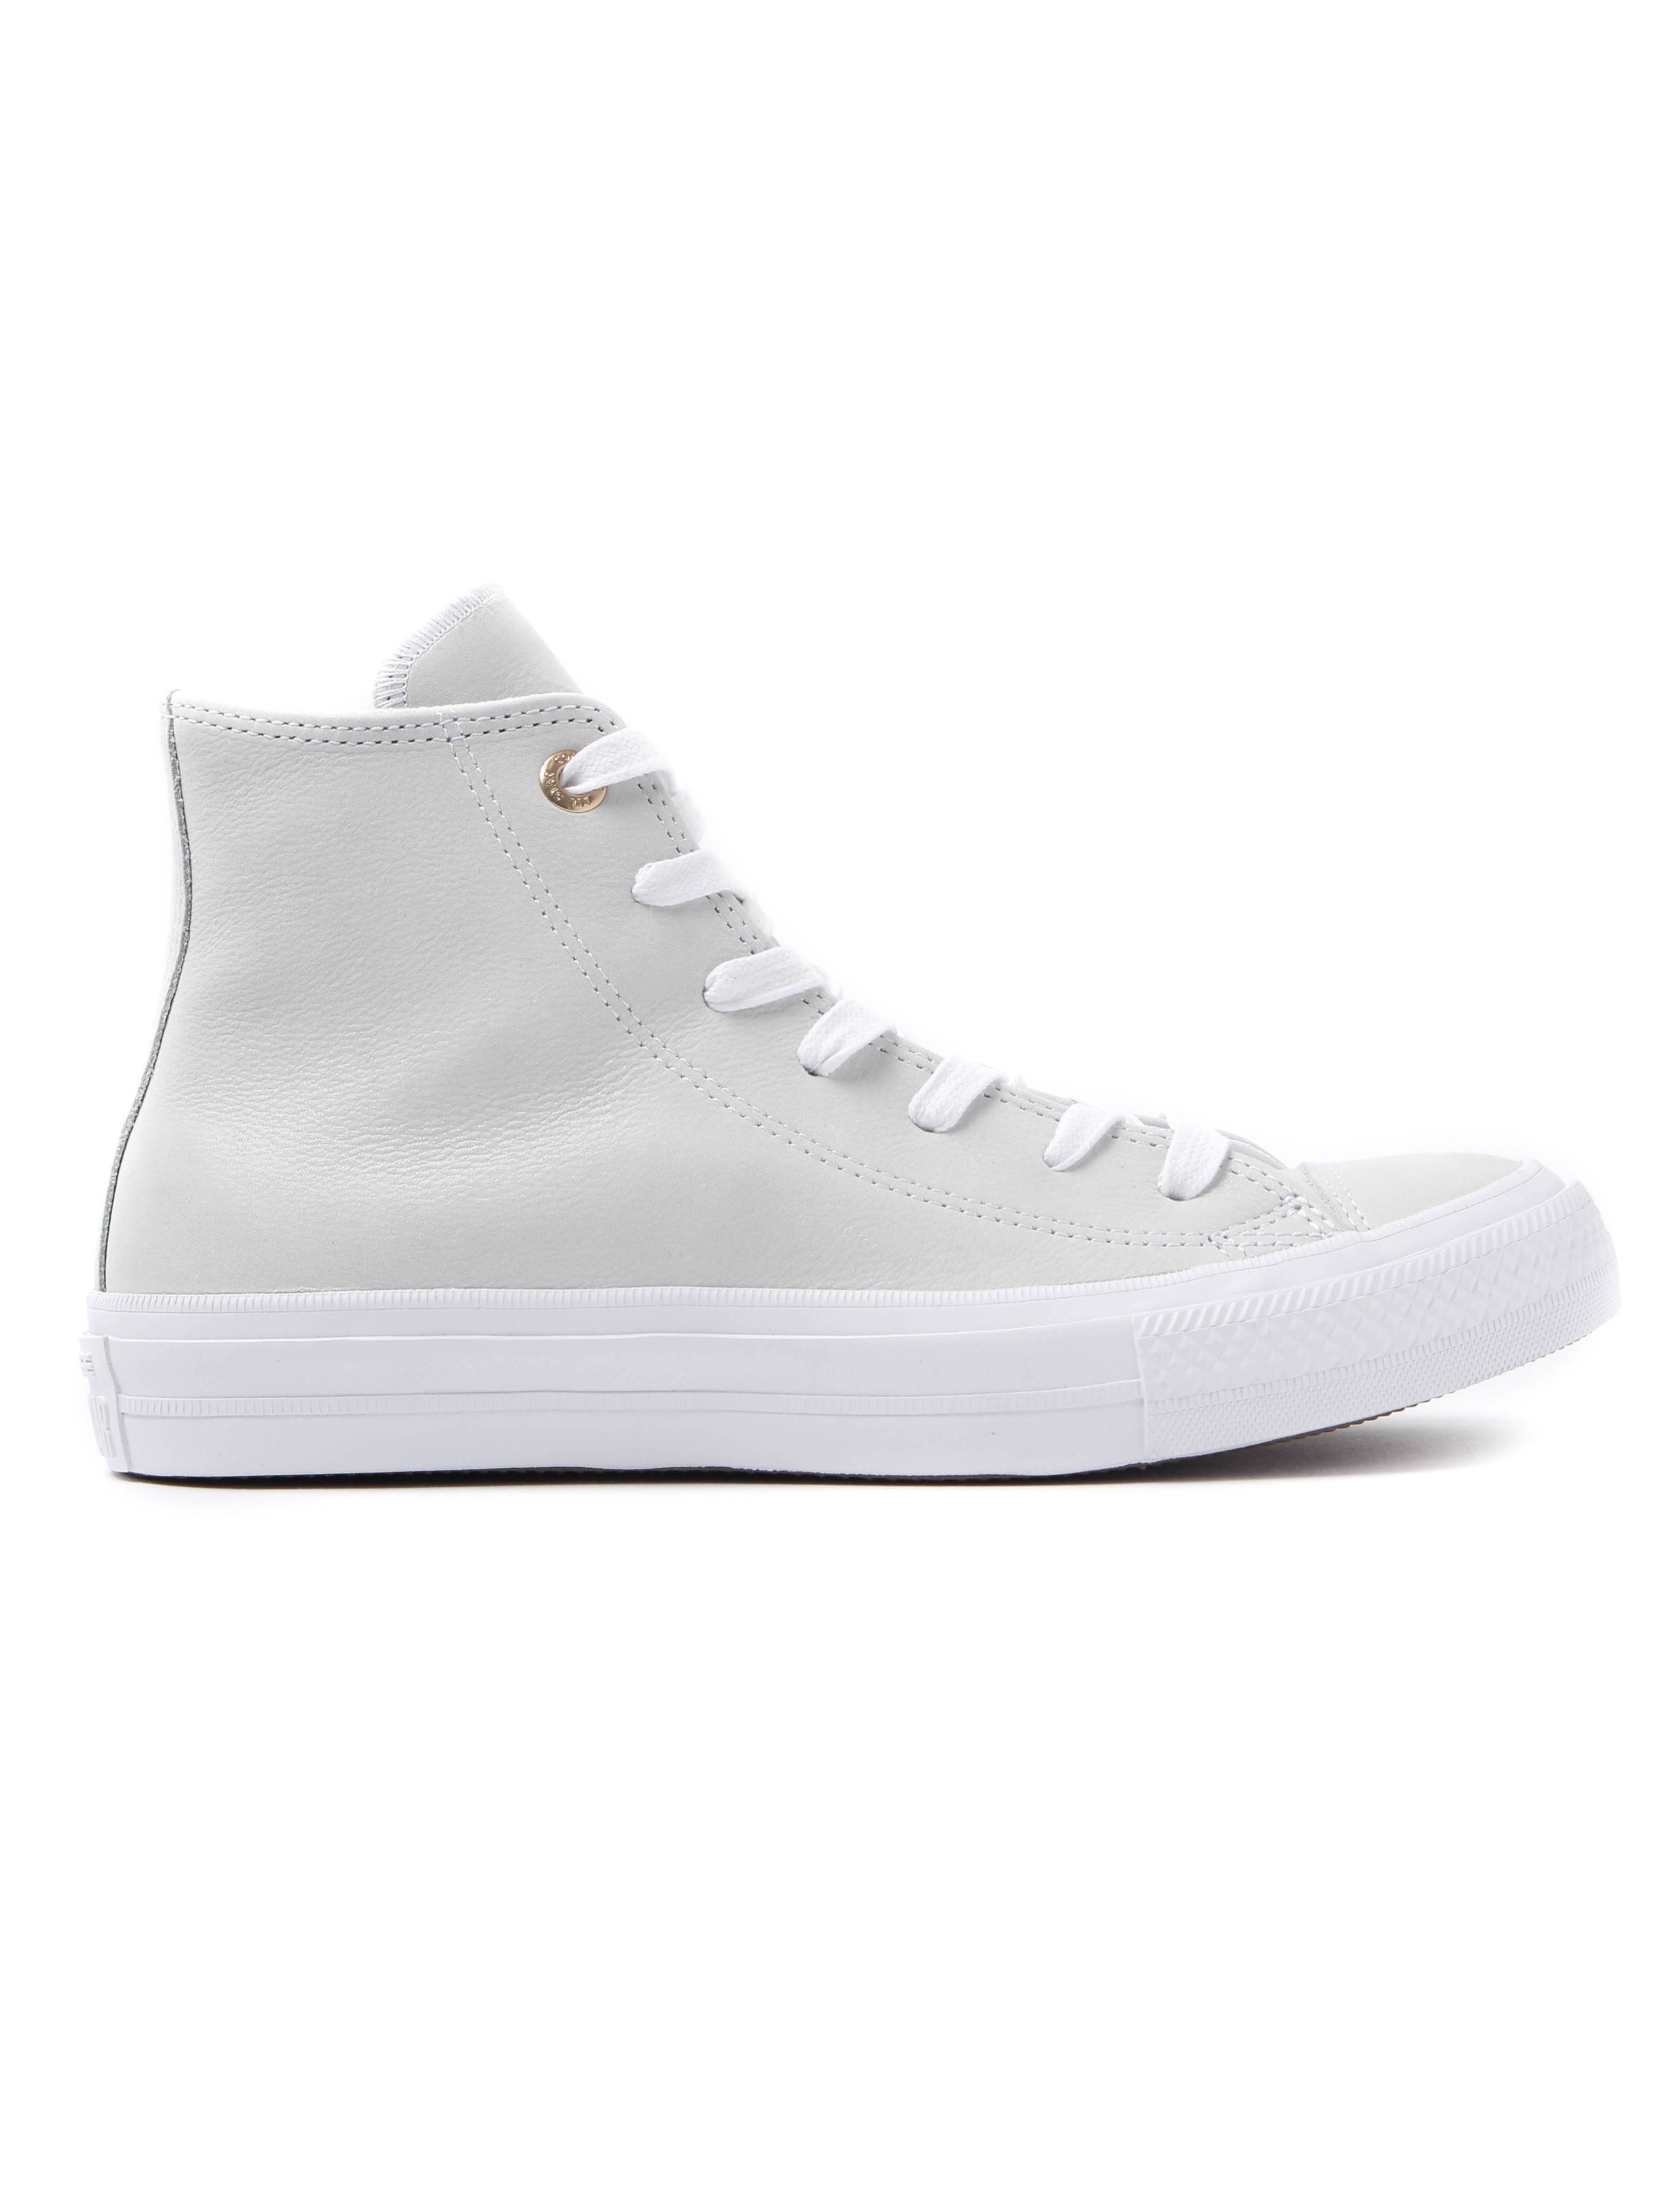 Converse Women's Chuck Taylor All Star II HI Trainers - White Leather